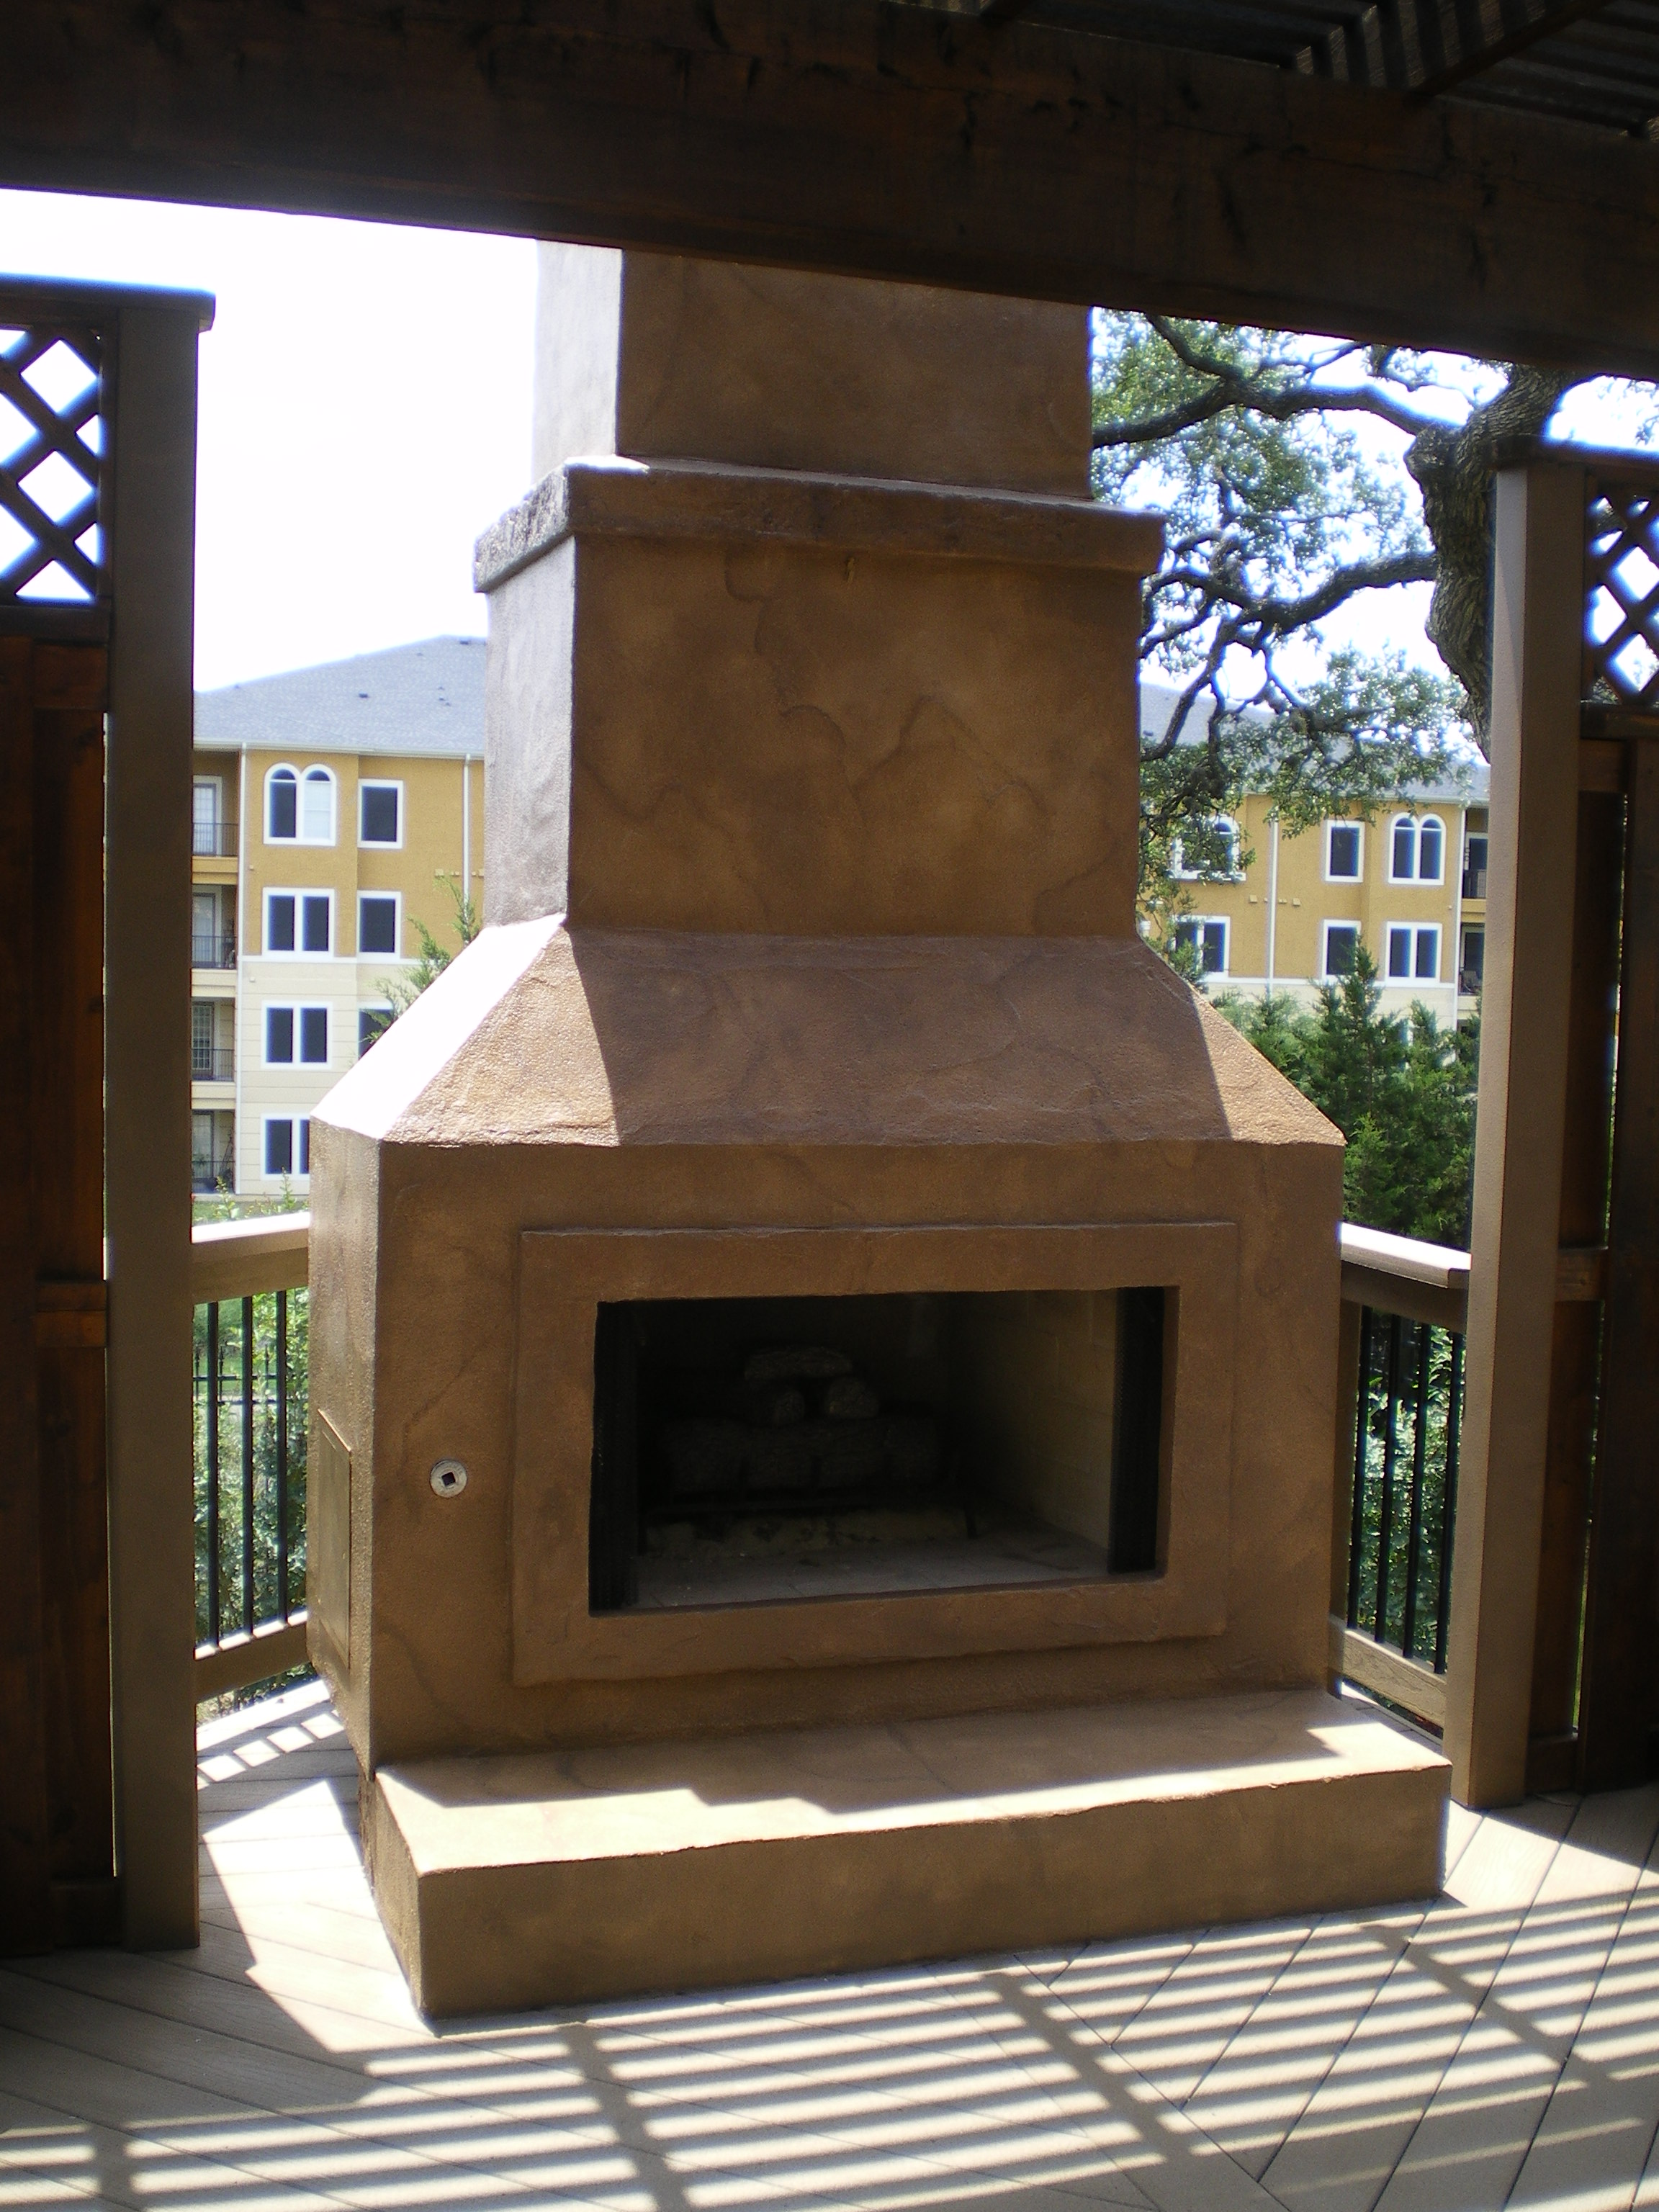 San Antonio, TX., Outdoor Patio Deck Fireplace in Faux Stone Look